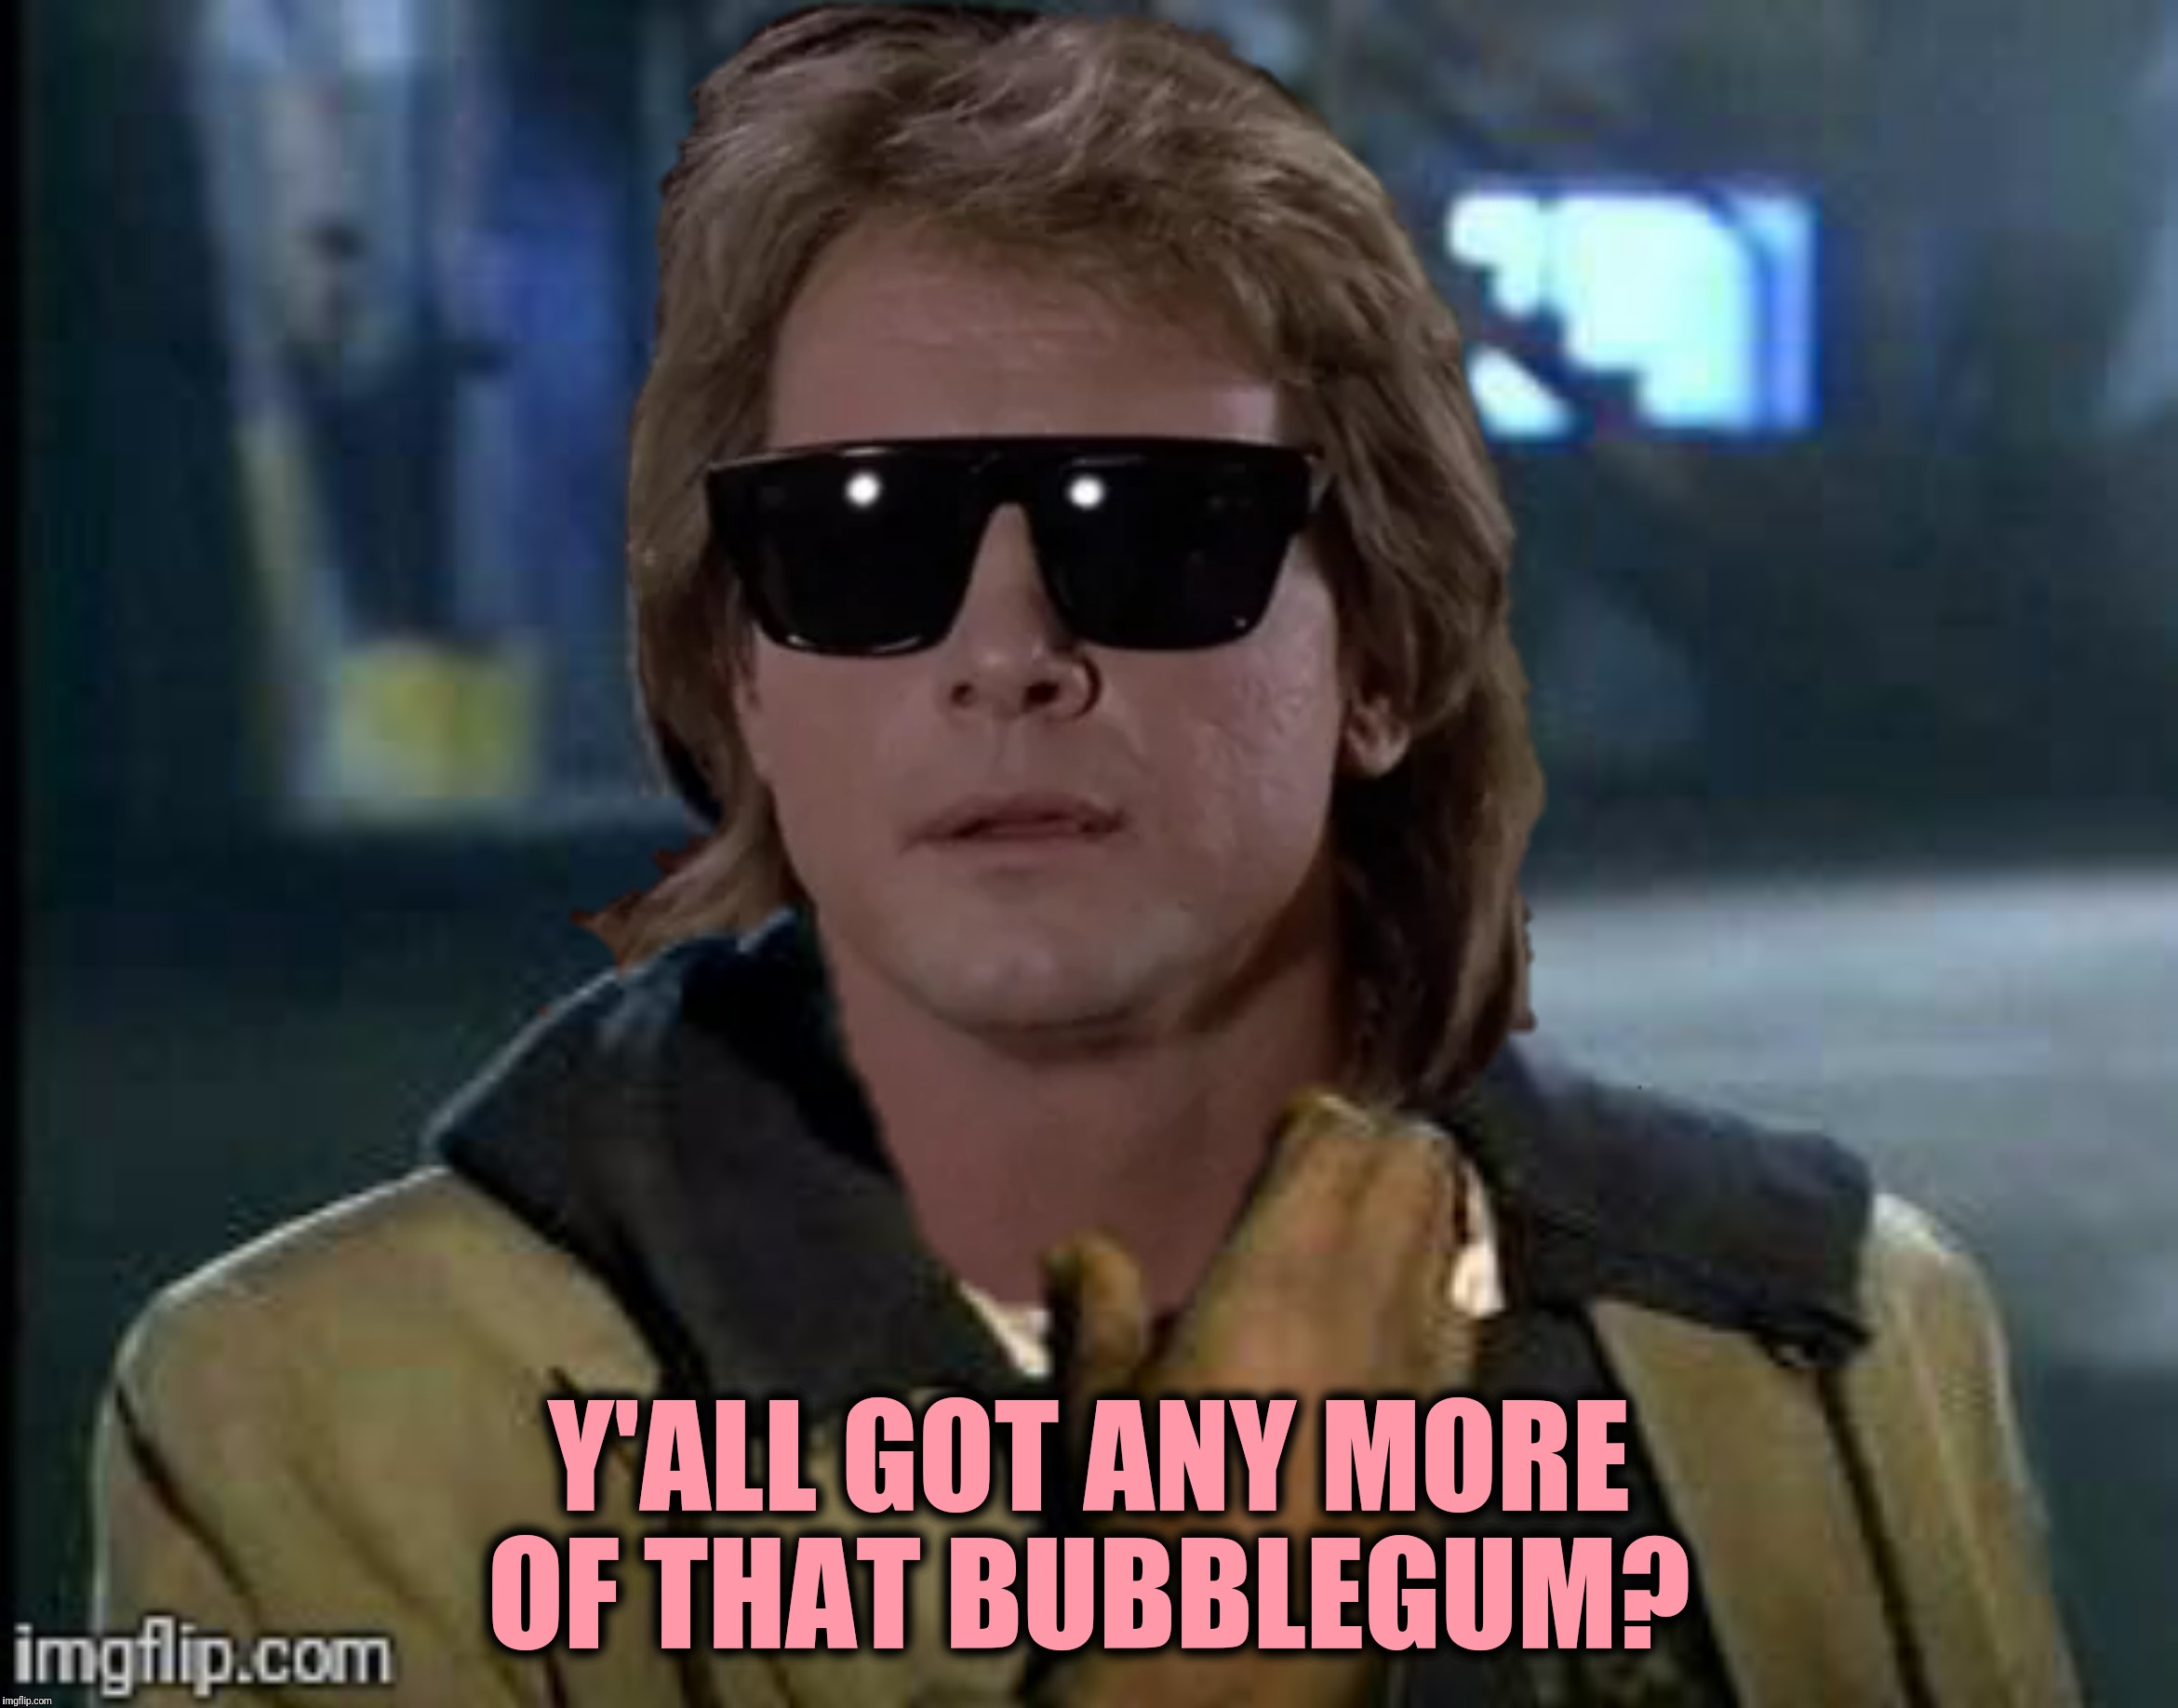 Bad Photoshop Sunday presents:  The face you make when you're all out of ass to kick | Y'ALL GOT ANY MORE OF THAT BUBBLEGUM? | image tagged in bad photoshop sunday,they live,y'all got any more of that,rowdy roddy piper | made w/ Imgflip meme maker